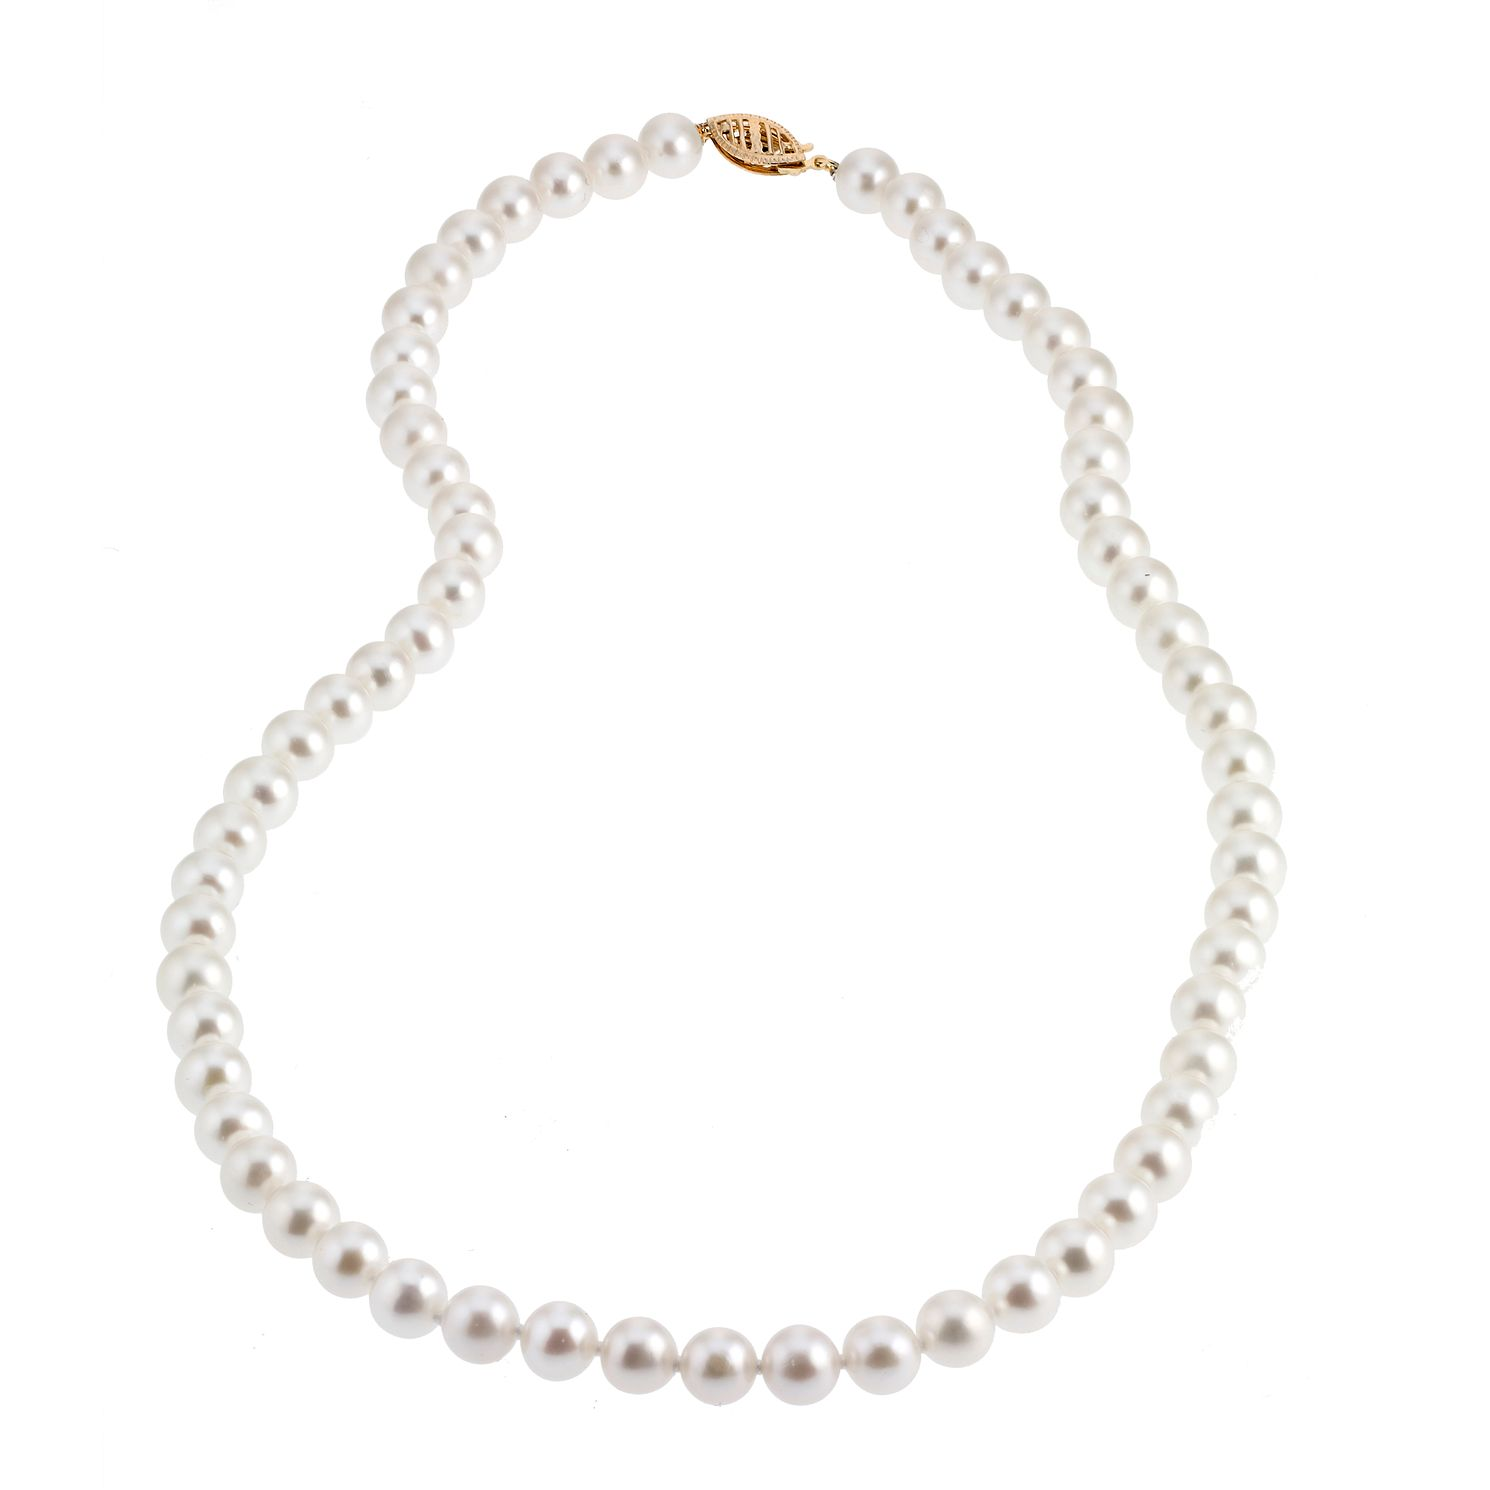 product from pearl jewellery brooch royal timeless necklace